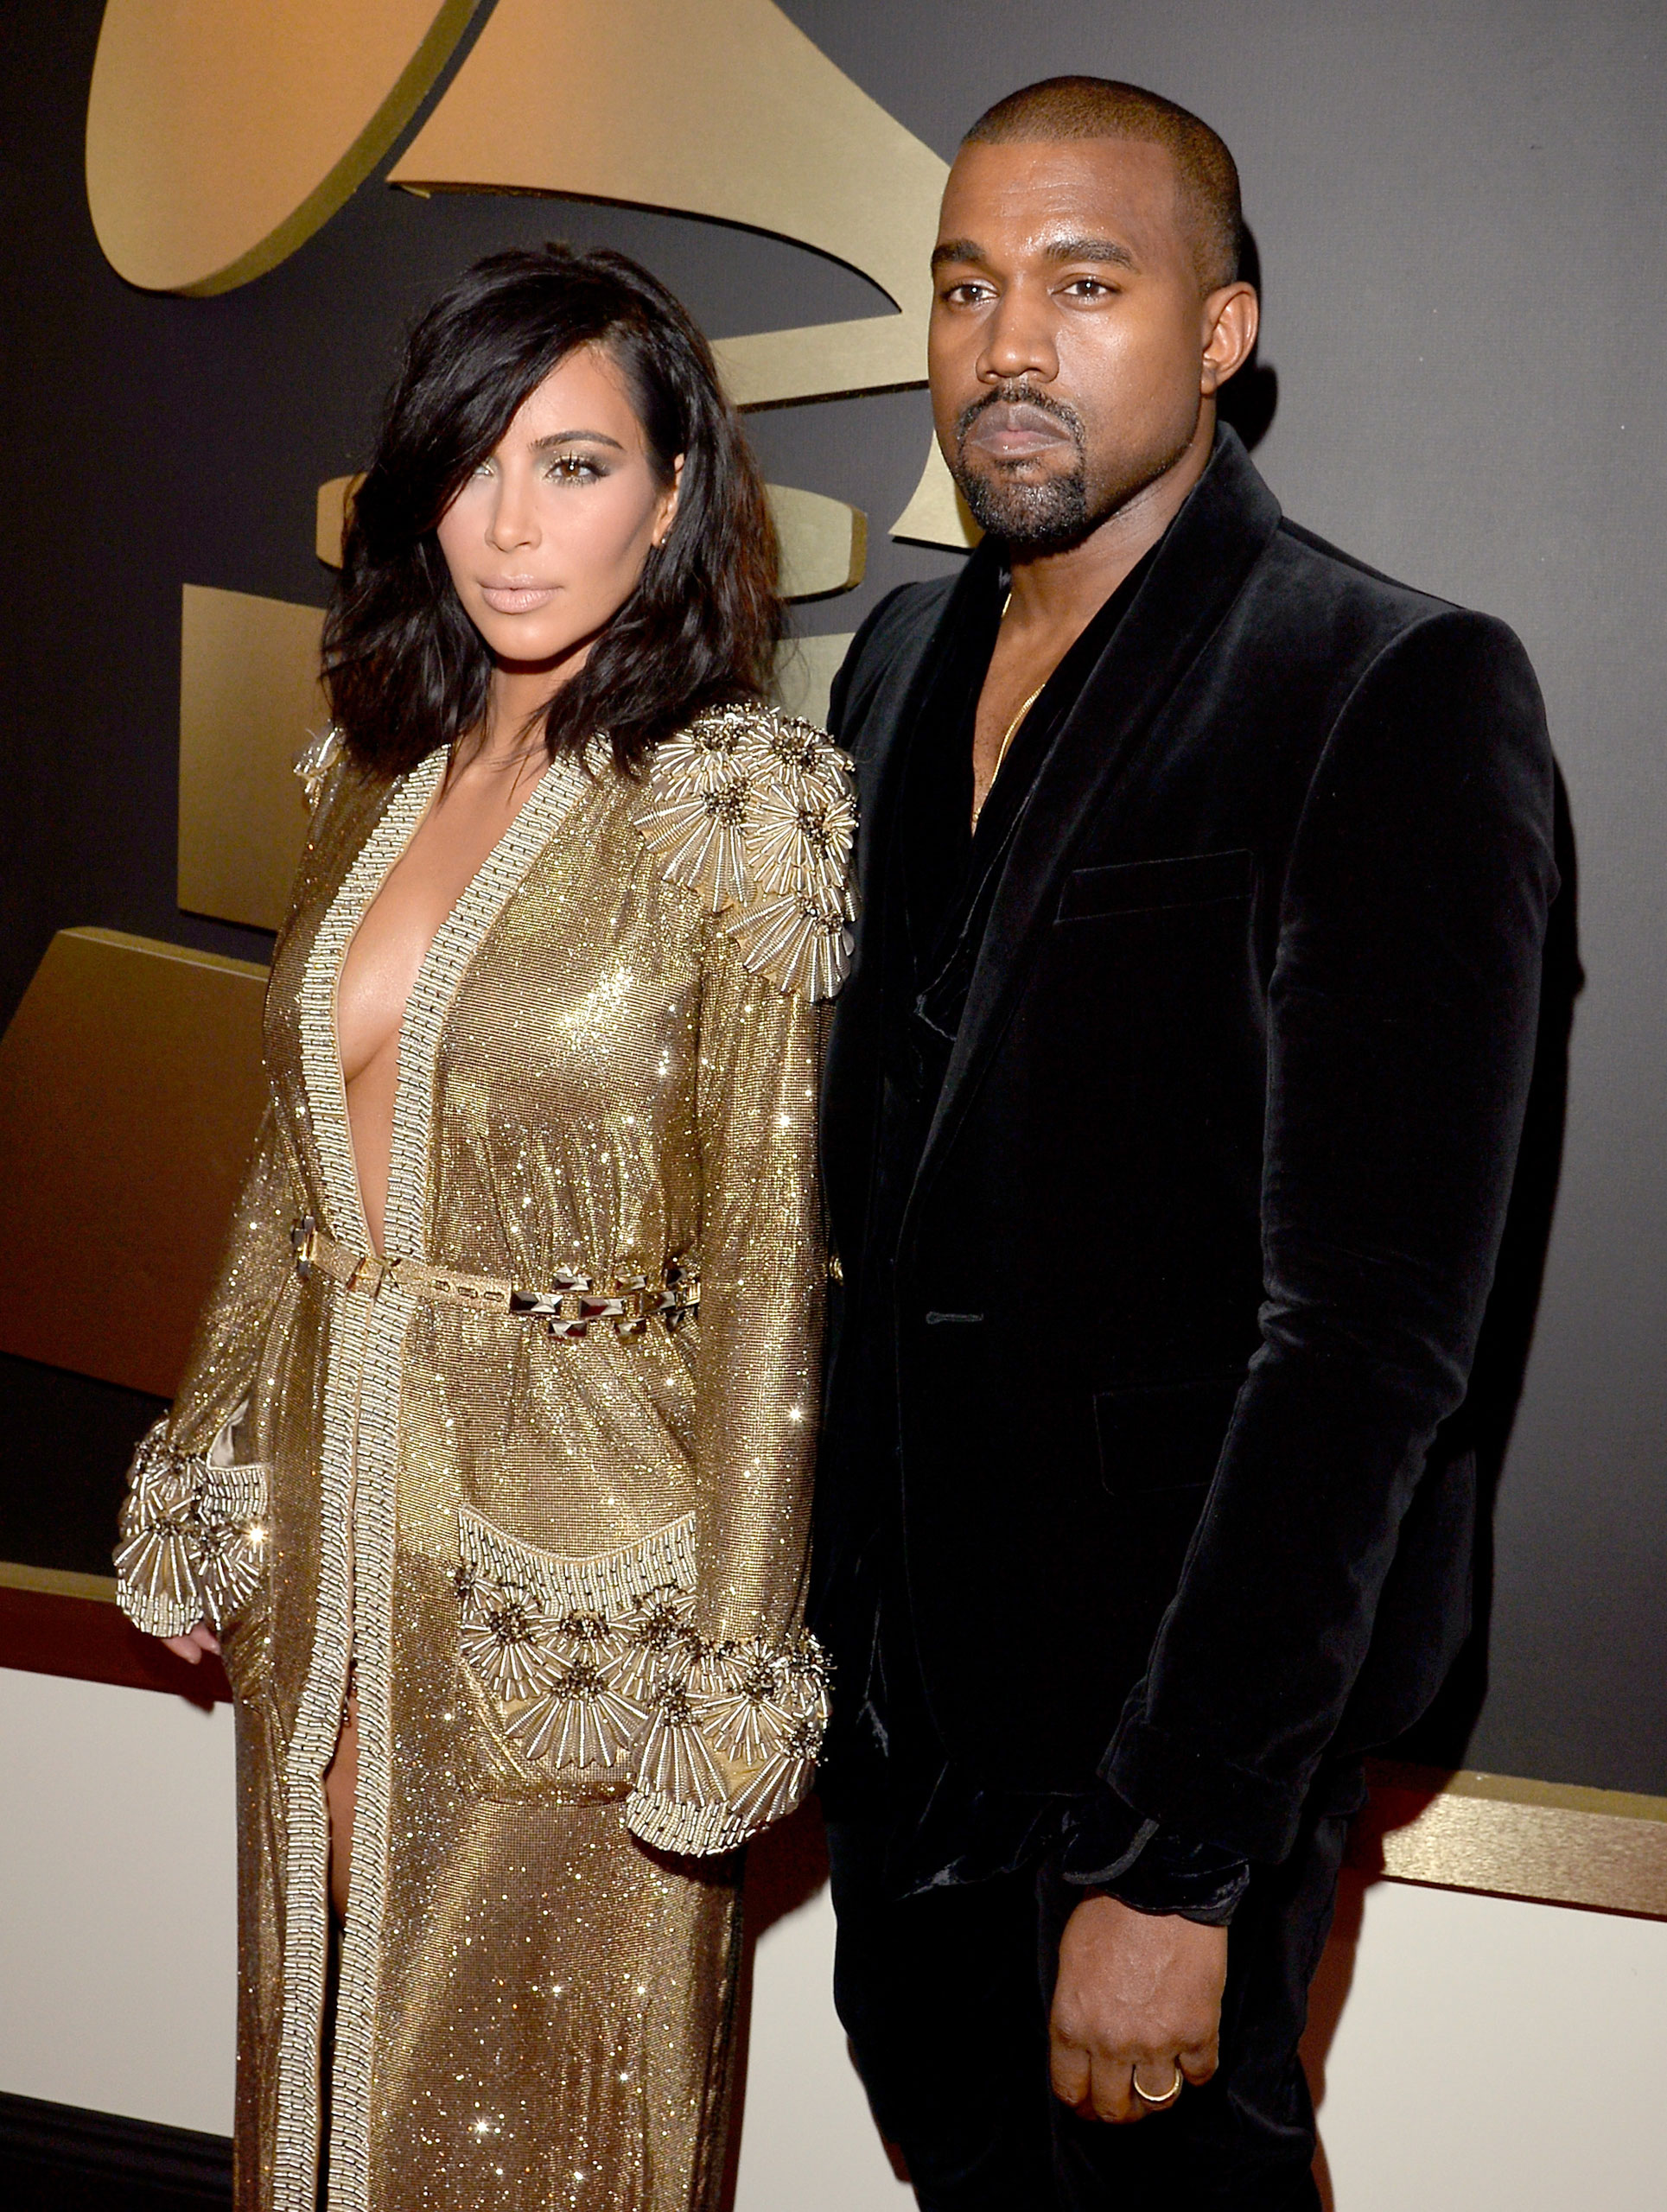 Kim Kardashian and Kanye West attend the 57th Annual Grammy Awards at the Staples Center on Feb. 8, 2015 in Los Angeles, Calif.